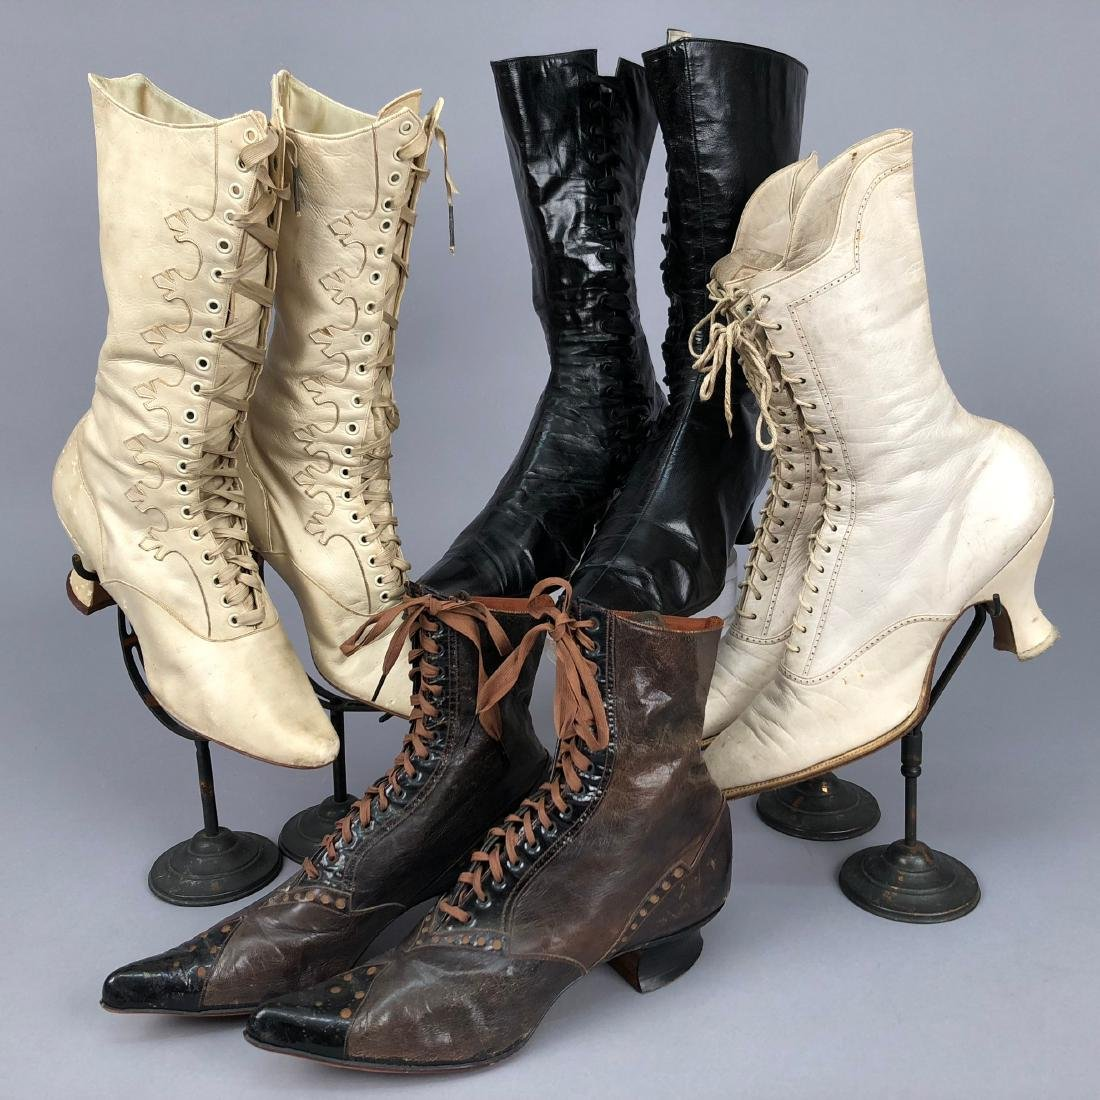 FOUR PAIR LADIES' LACING BOOTS, 1890s